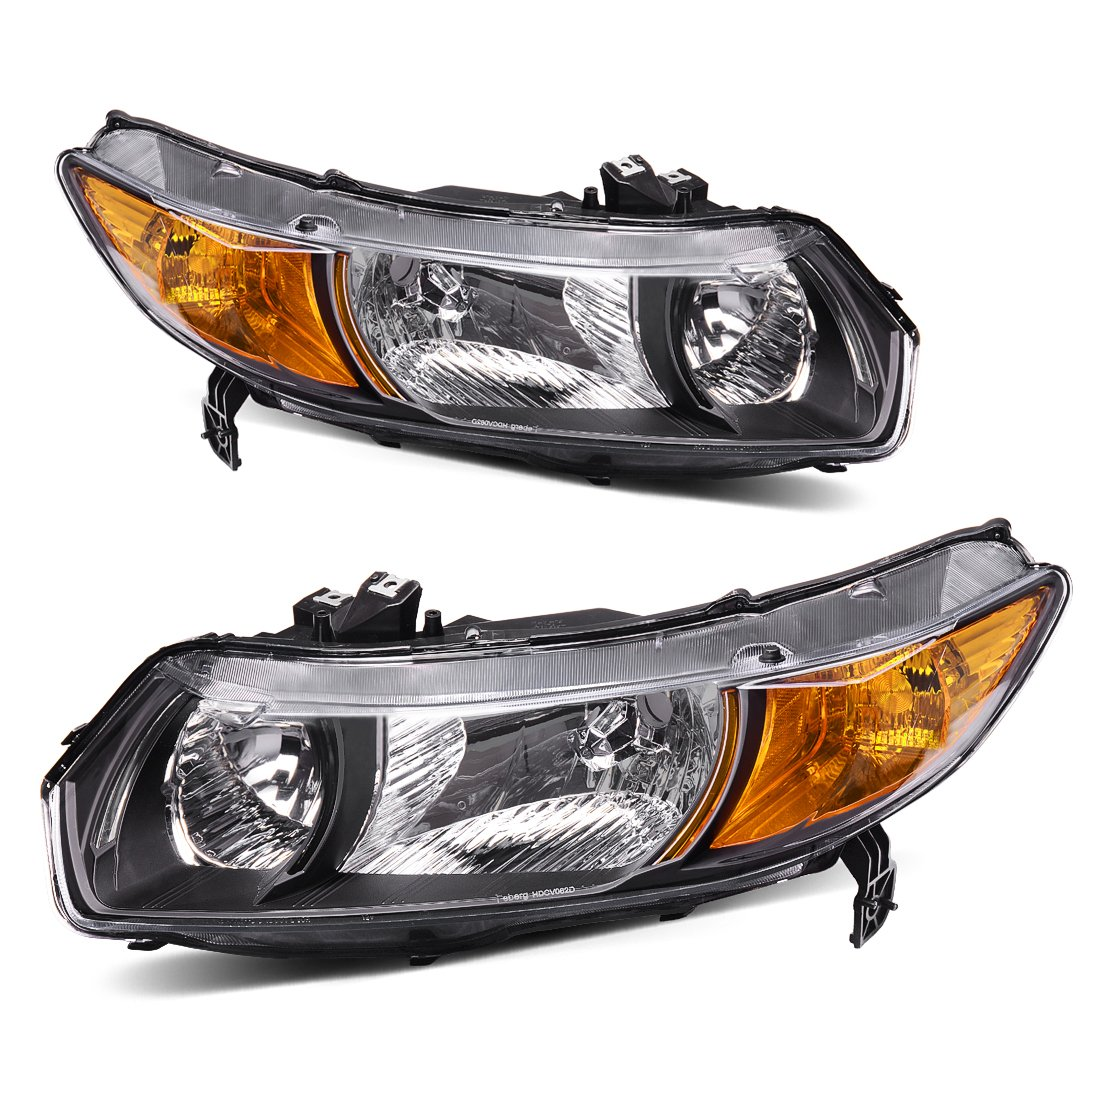 Headlight Assembly OE Style Replacement Direct for 2006-2011 Honda Civic 2 Door Headlamps Chrome Housing with Amber Park Lens (Driver and Passenger Side) AUTOSAVER88